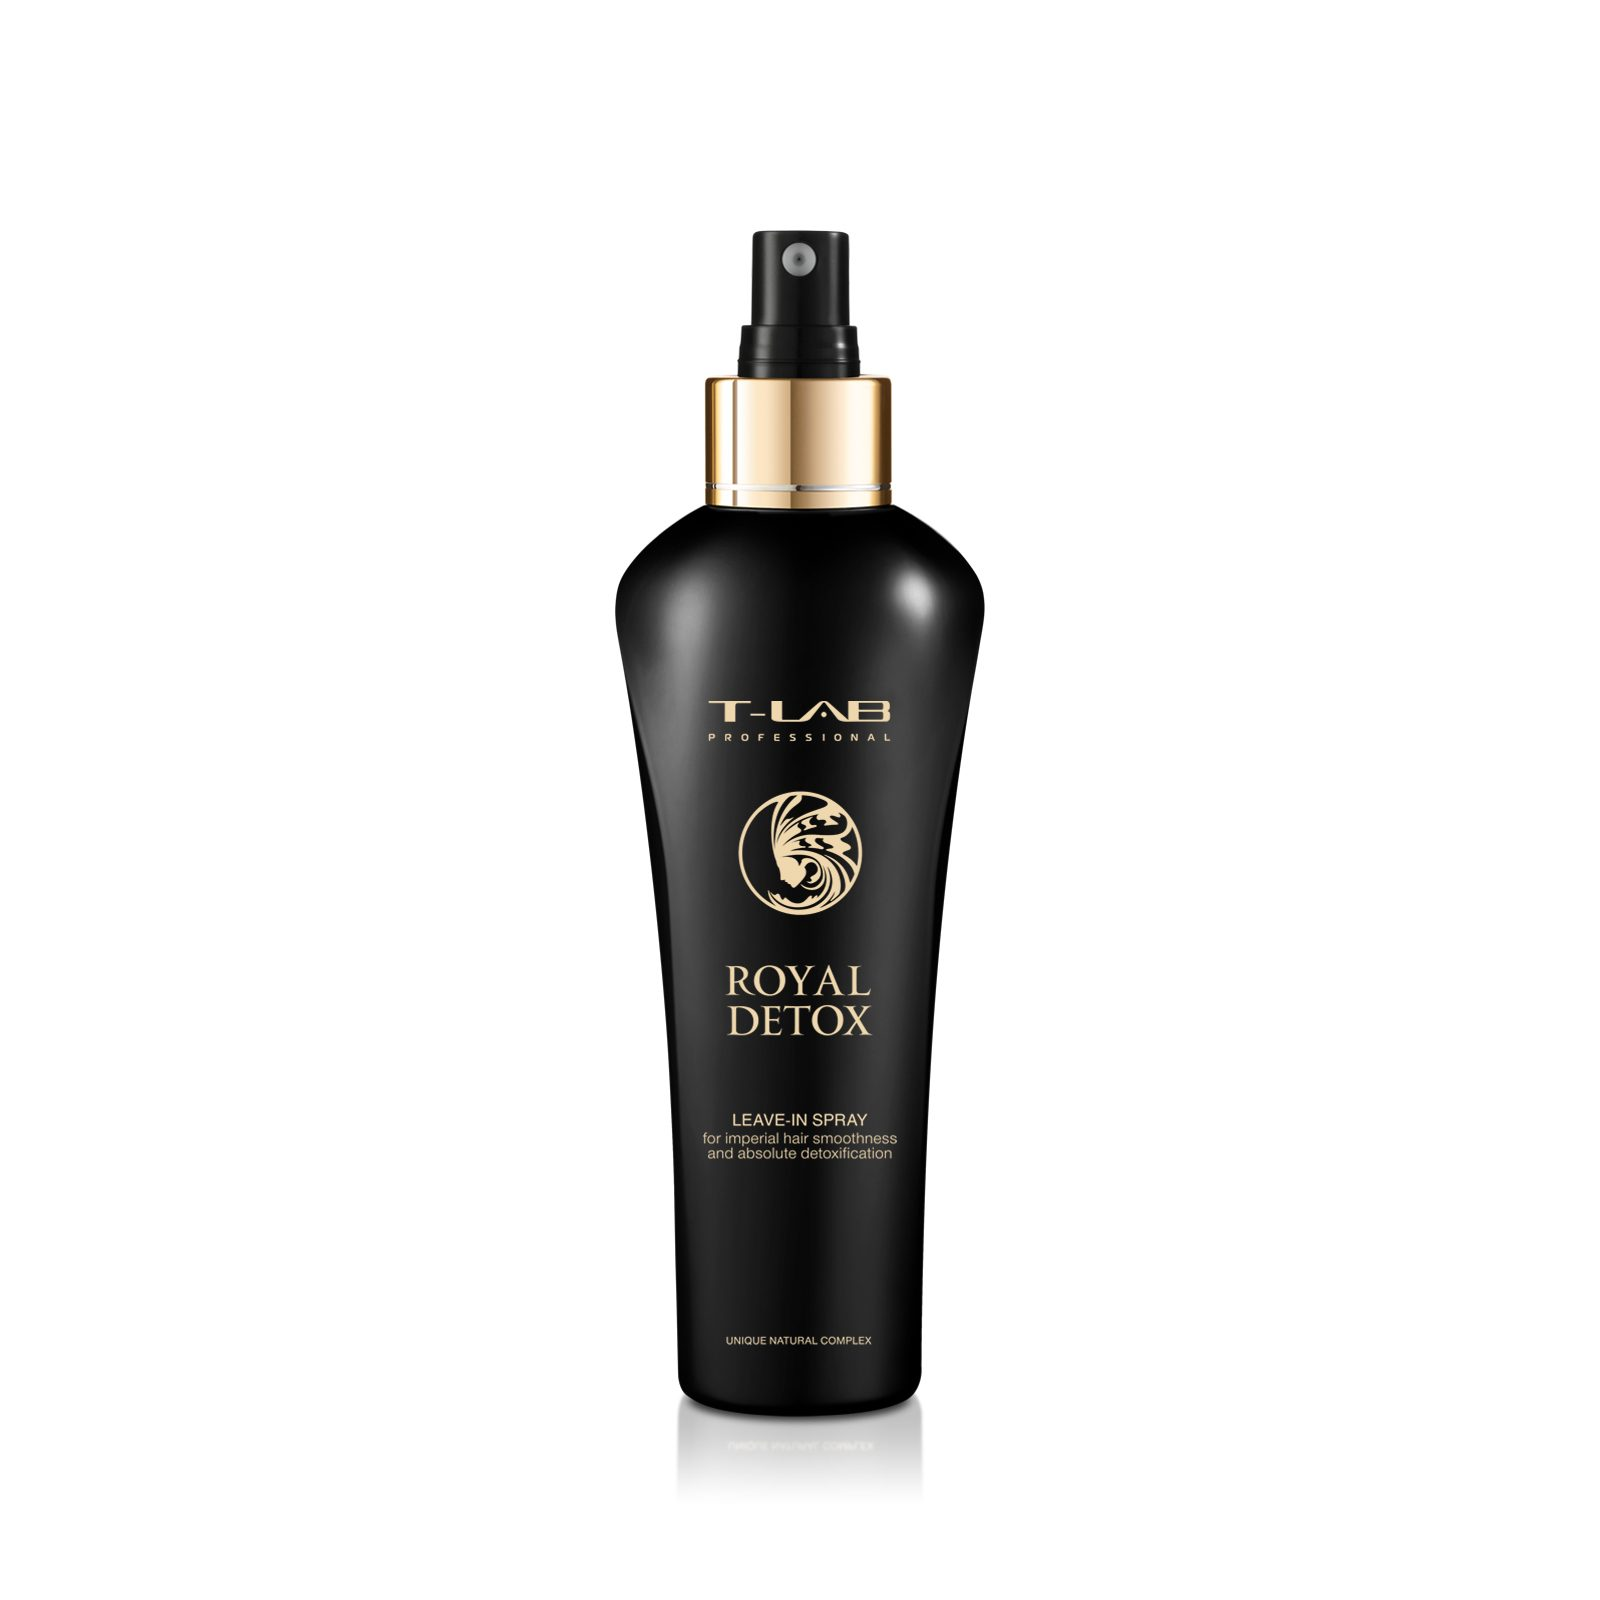 ROYAL DETOX LEAVE-IN SPRAY 130 ml